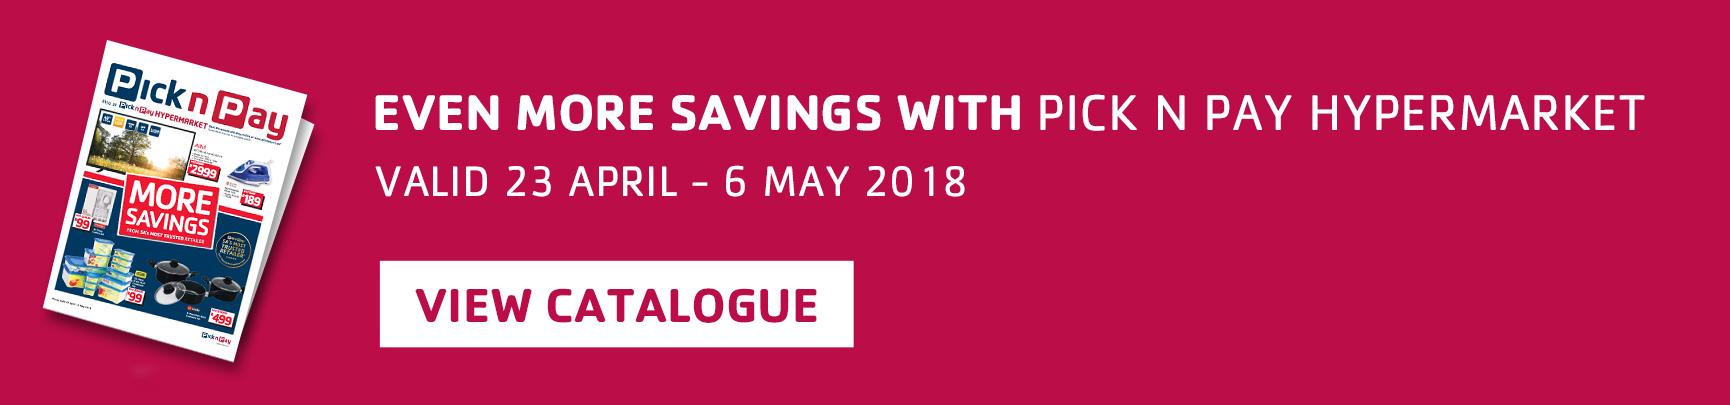 Even-more-savings-23-Apr-18.jpg